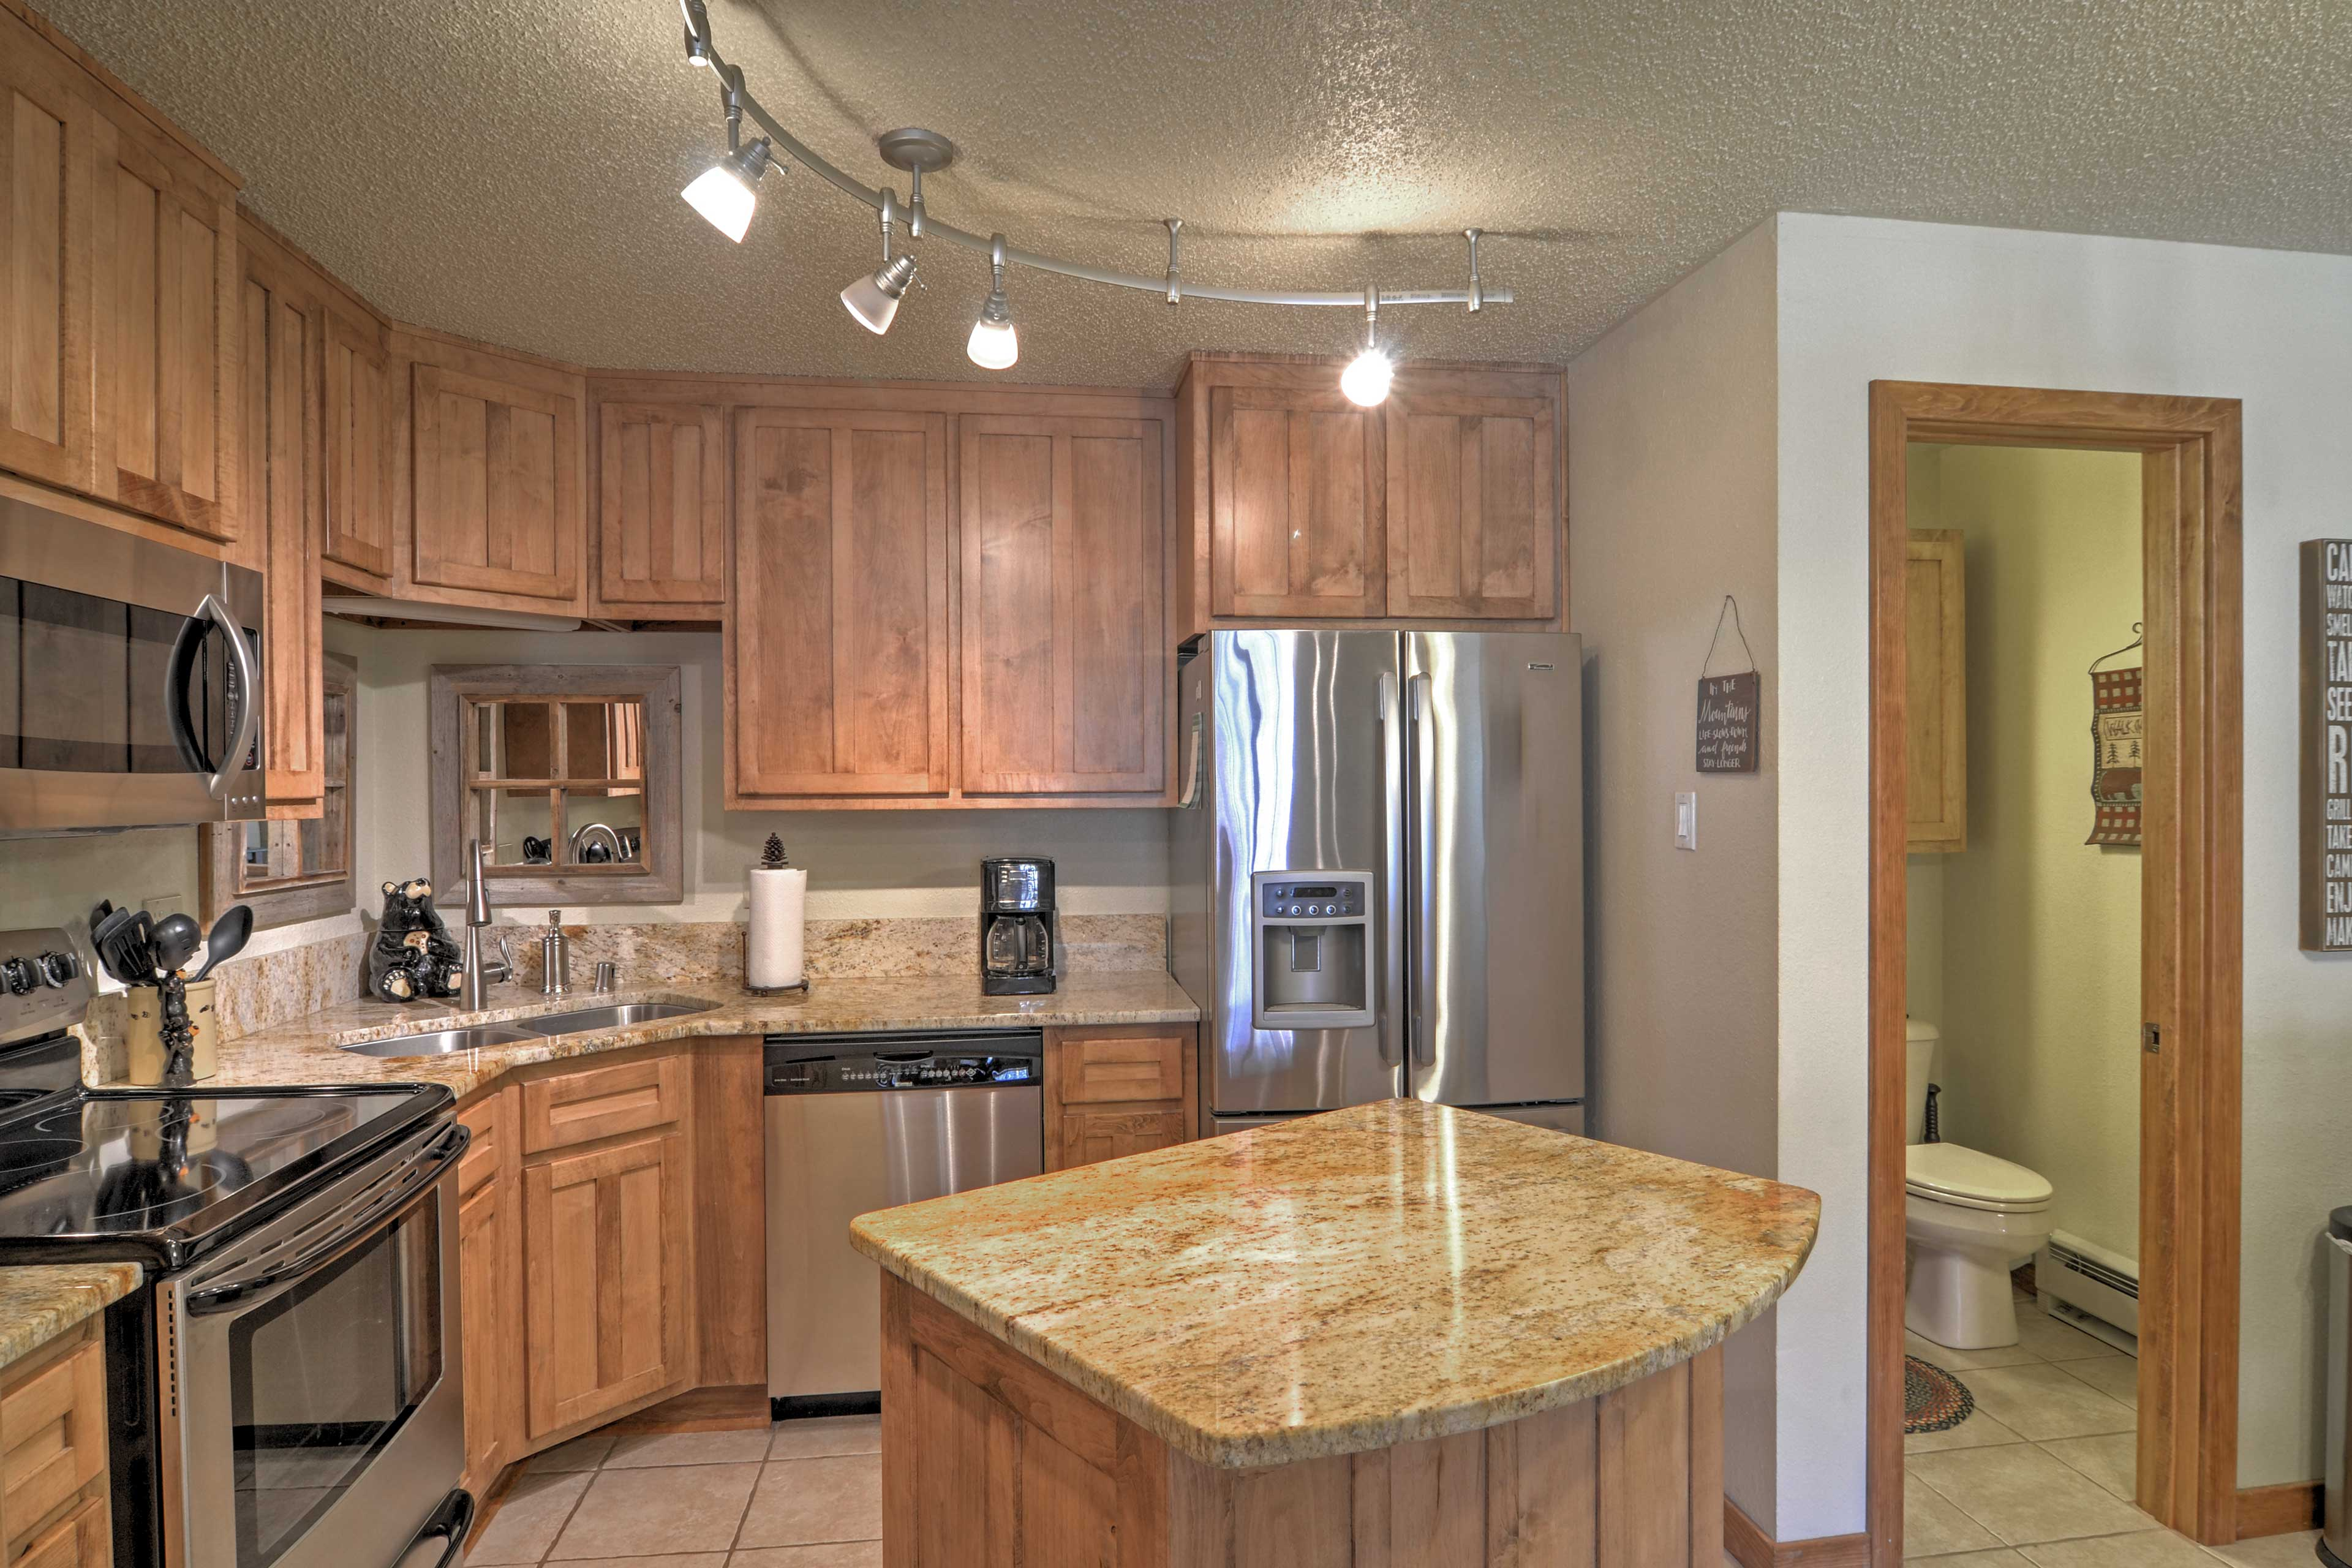 With granite counters and stainless steel appliance, cooking will be a breeze.